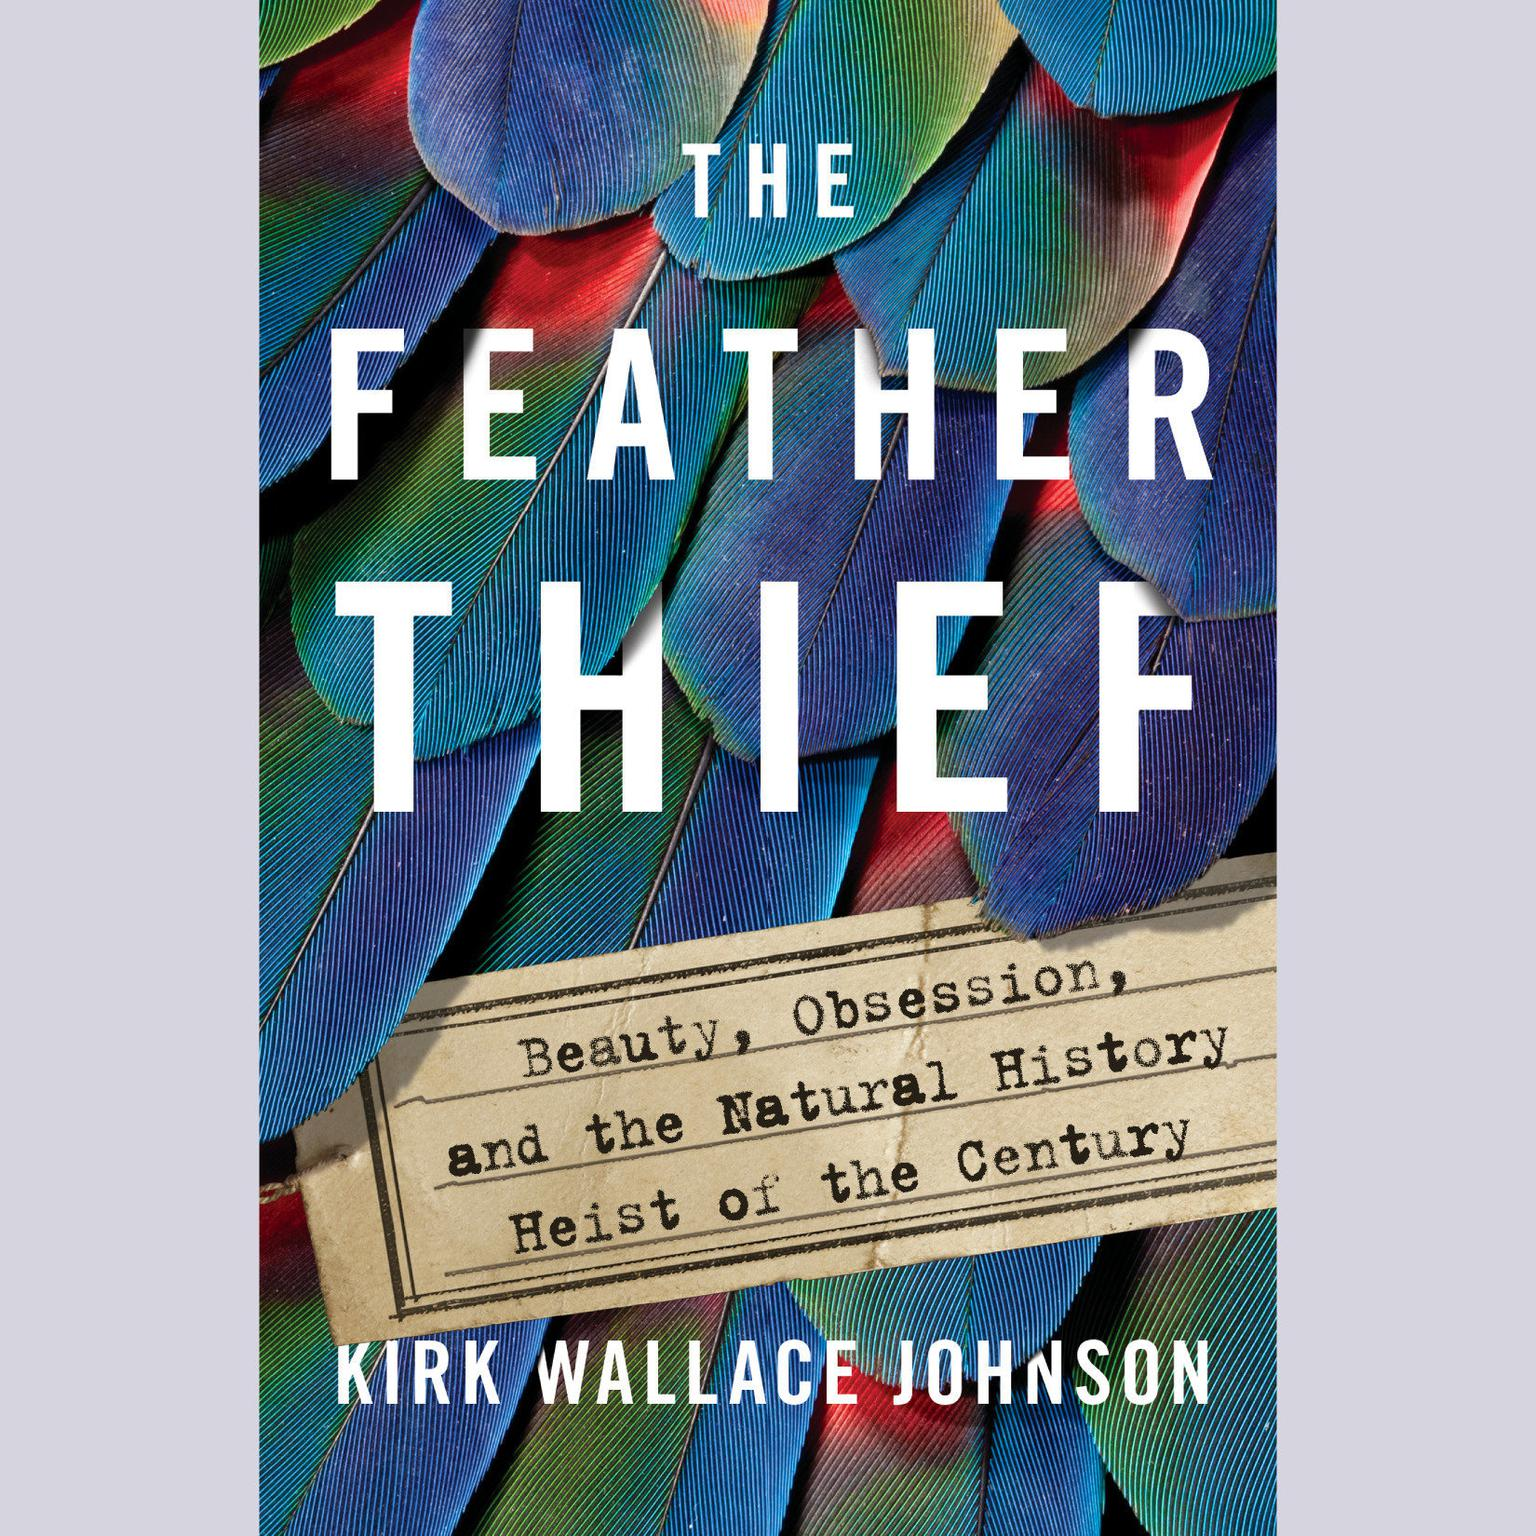 Printable The Feather Thief: Beauty, Obsession, and the Natural History Heist of the Century Audiobook Cover Art